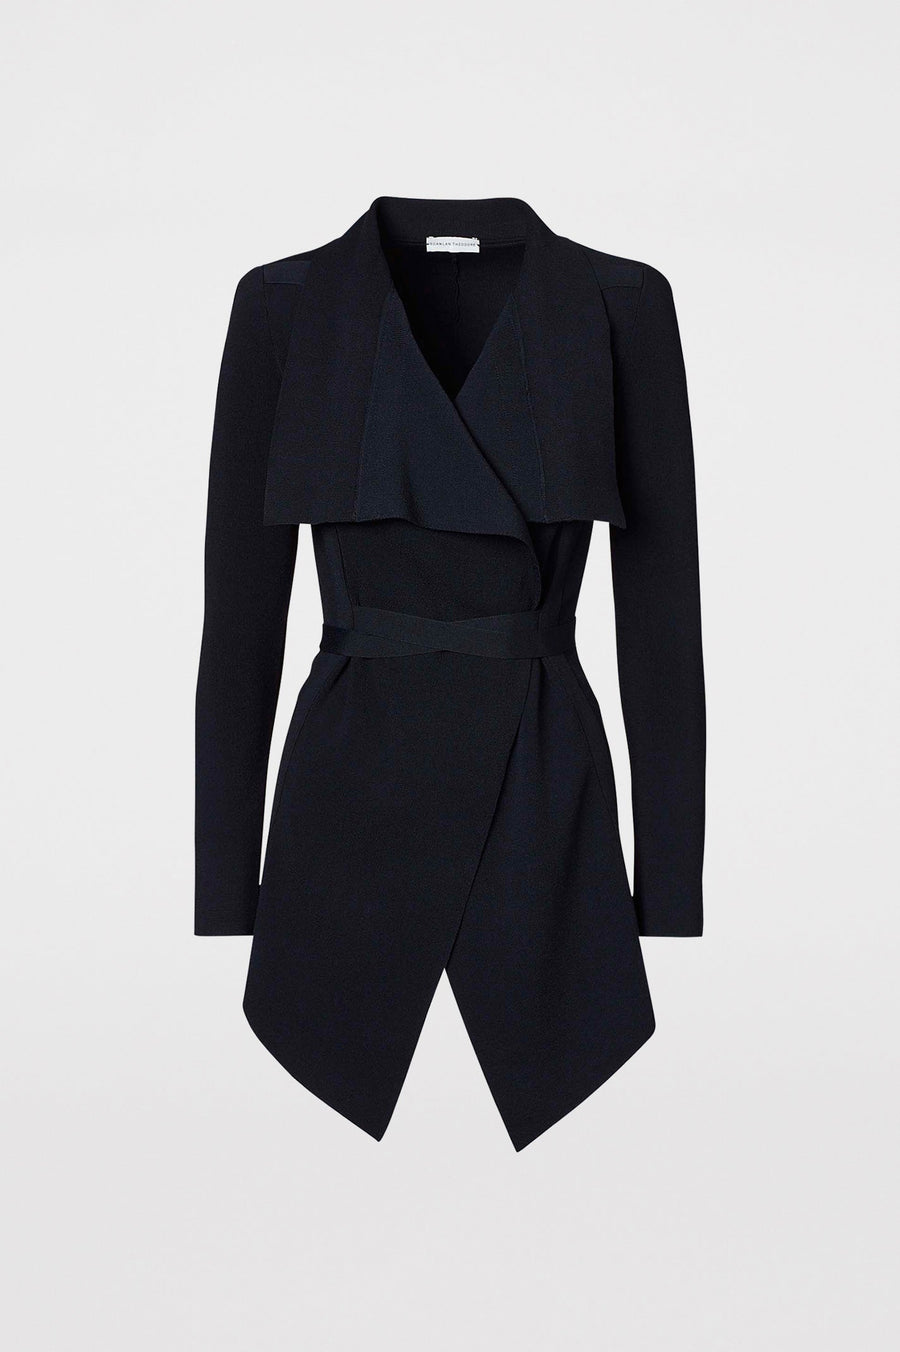 Crepe Knit Drape Front Jacket, tailored jacket, pointed collar, fitted bodice, shoulder pads, flap pocket detail, Color Navy